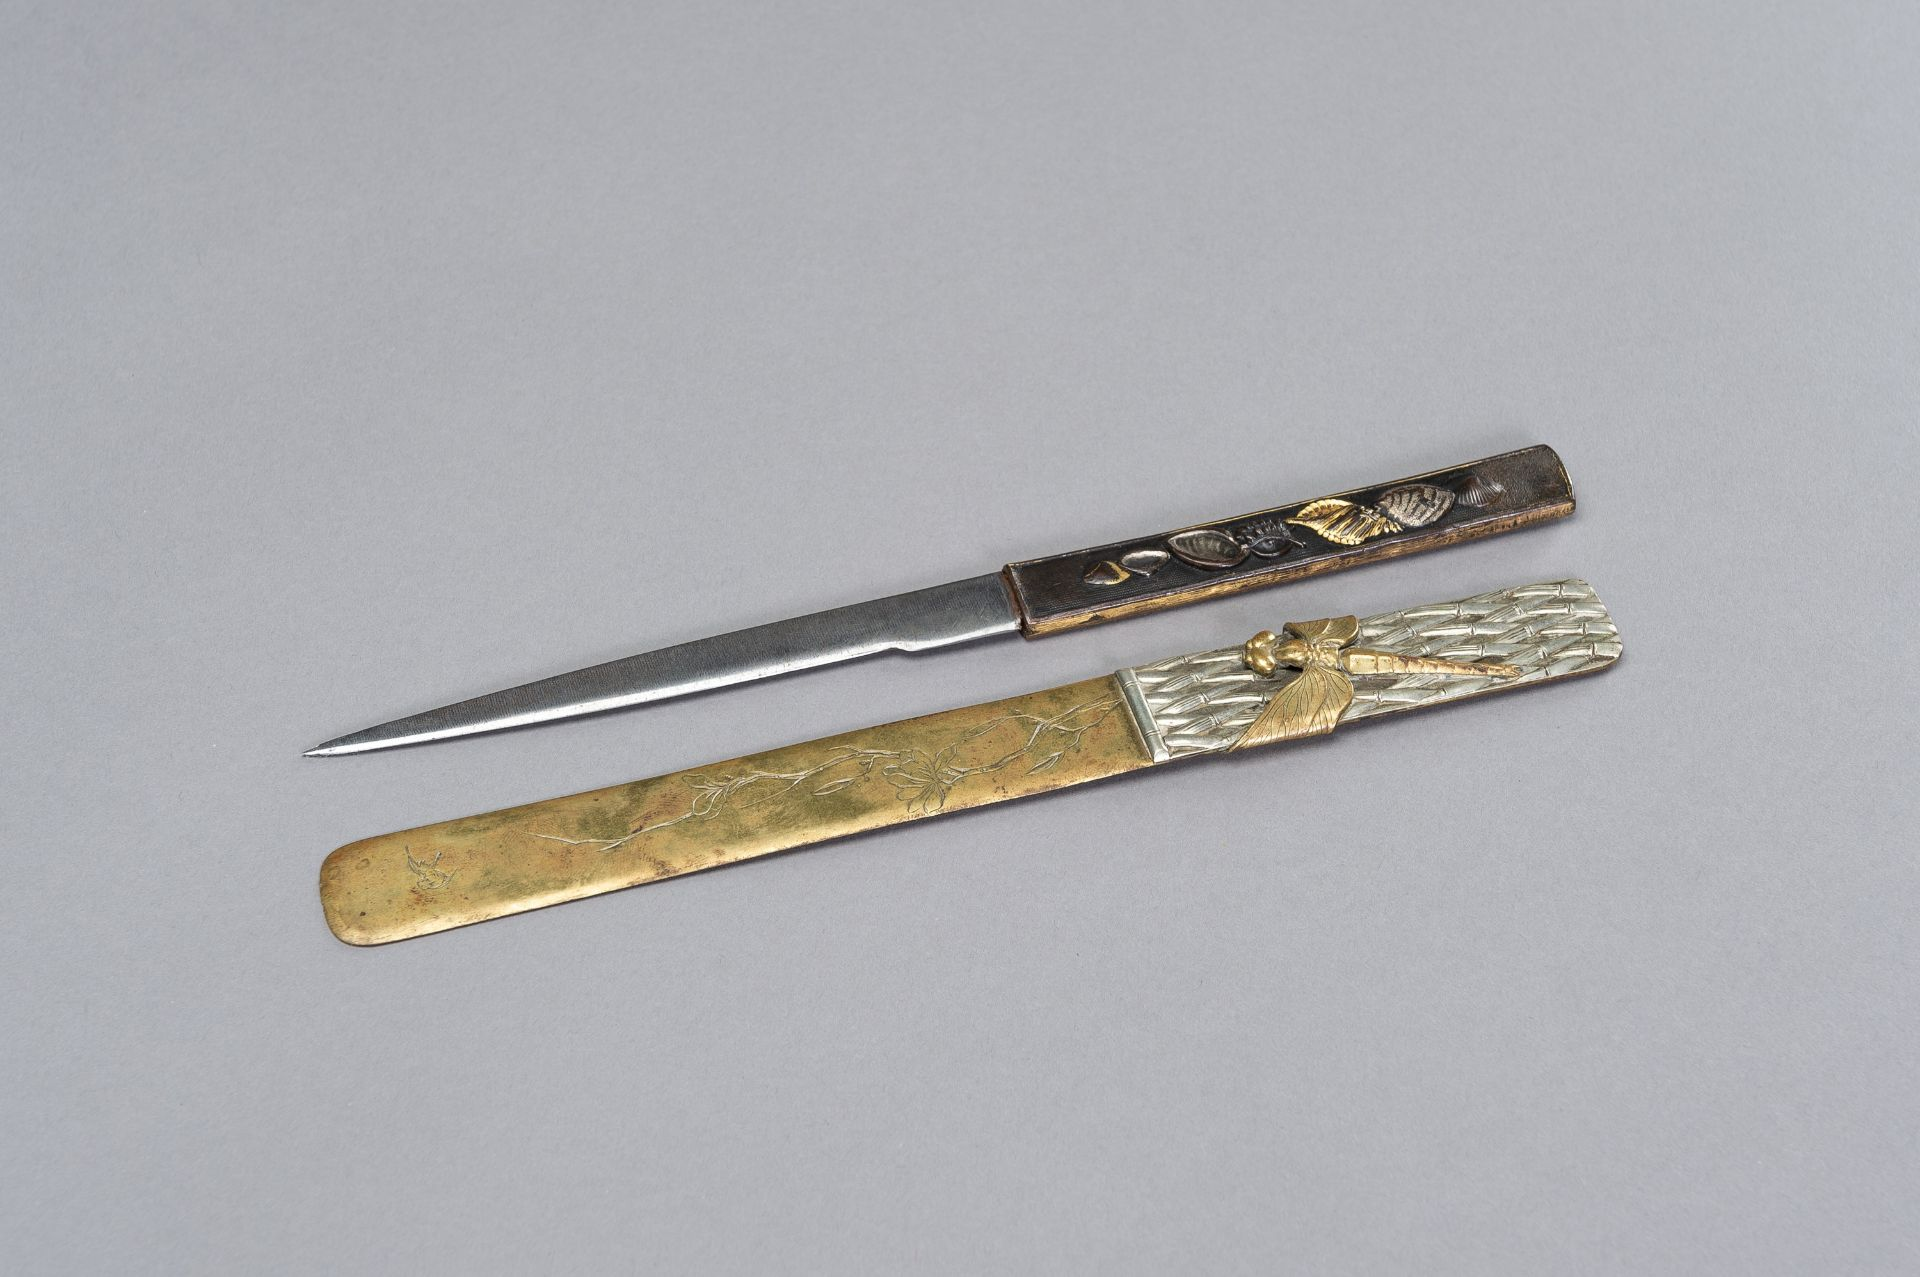 A COPPER KOZUKA WITH BLADE AND A SENTOKU PAGE TURNER WITH DRAGONFLY - Image 2 of 7